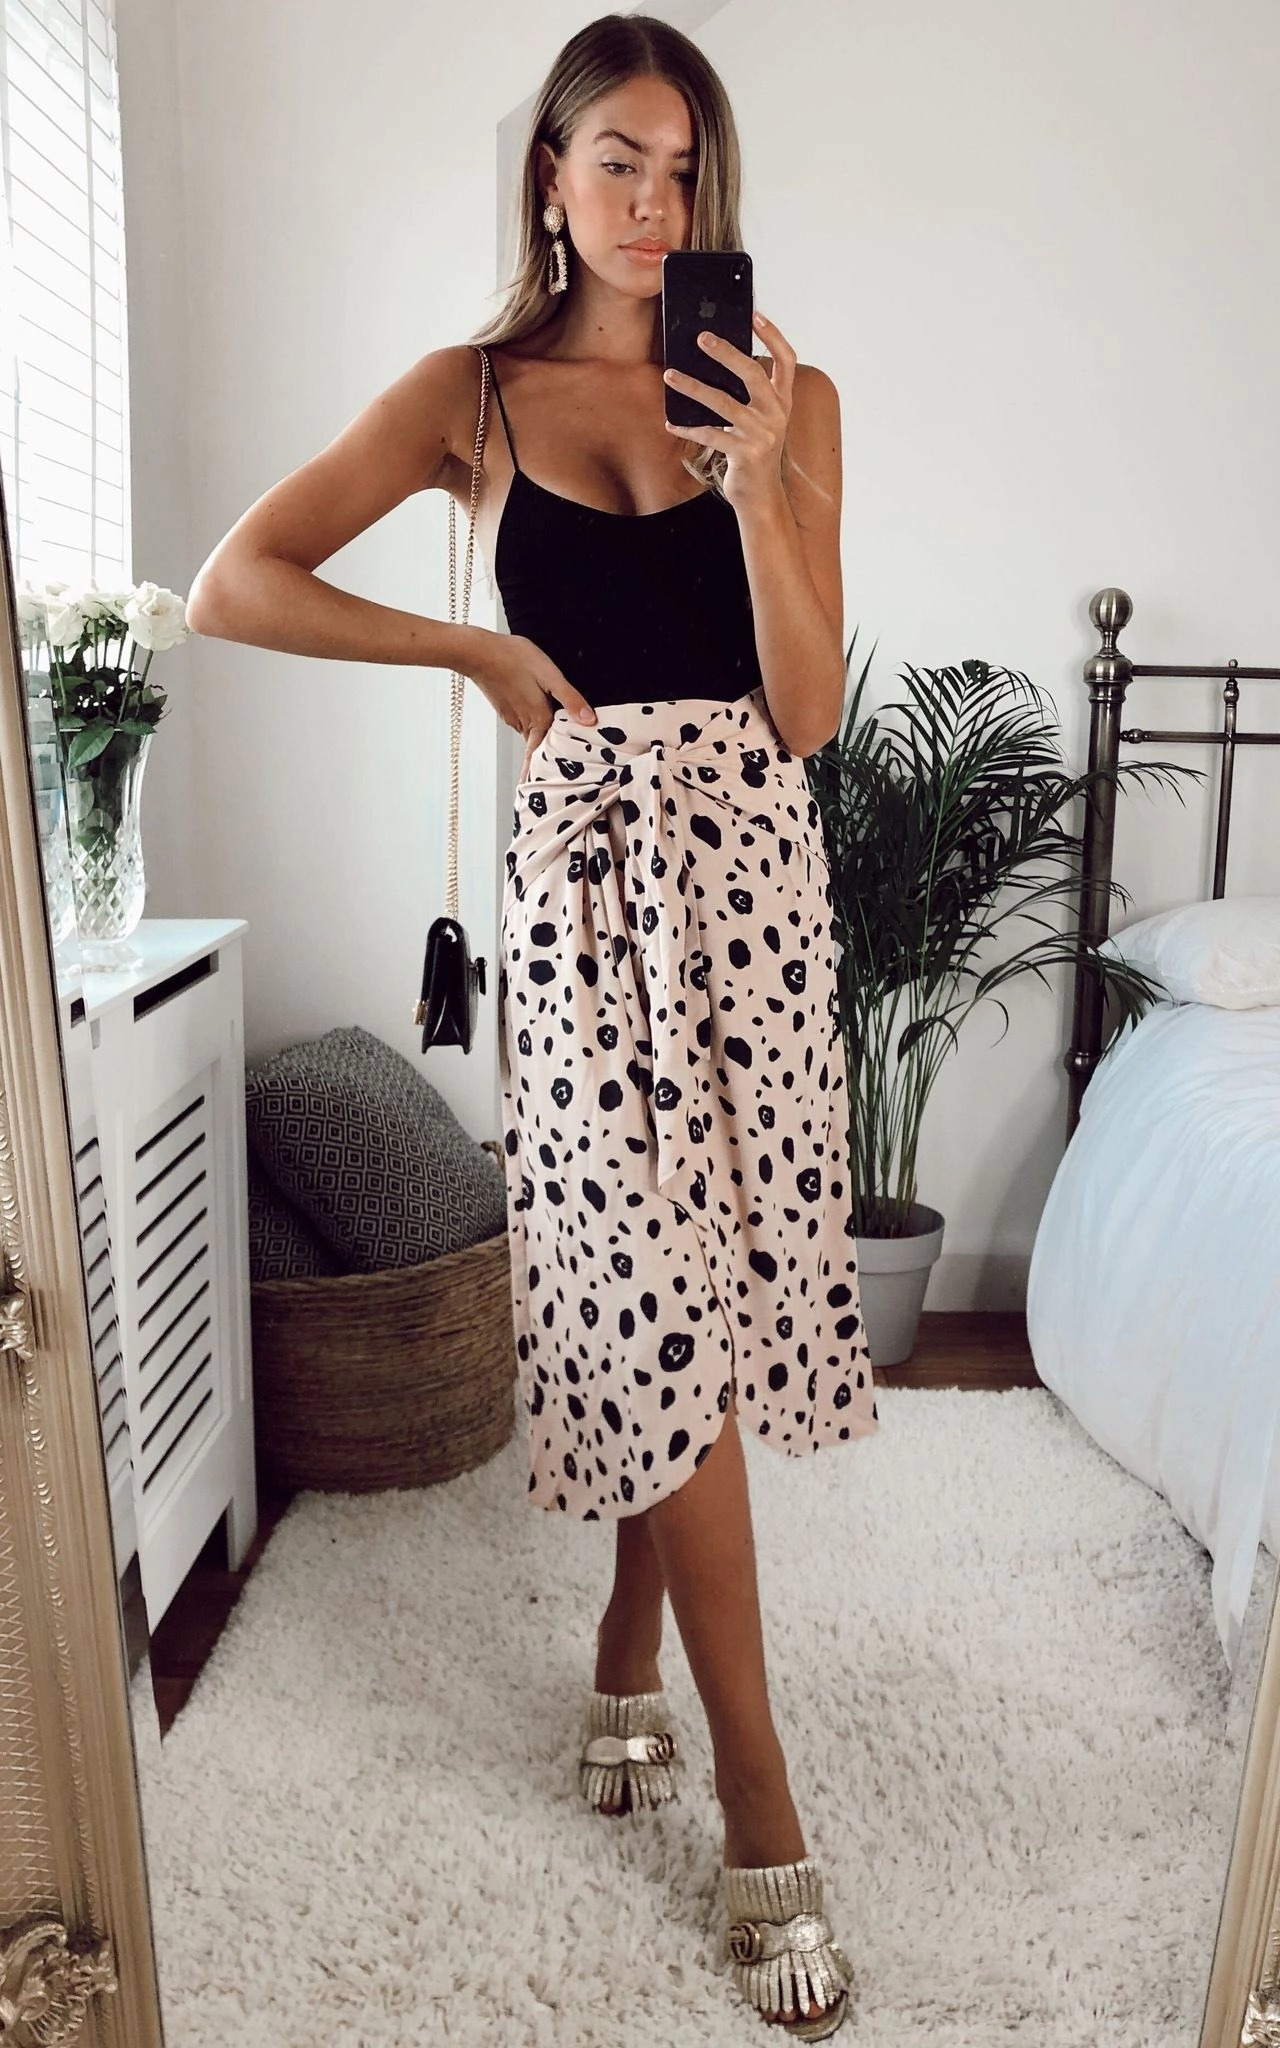 Midi skirt outfit with neutral print